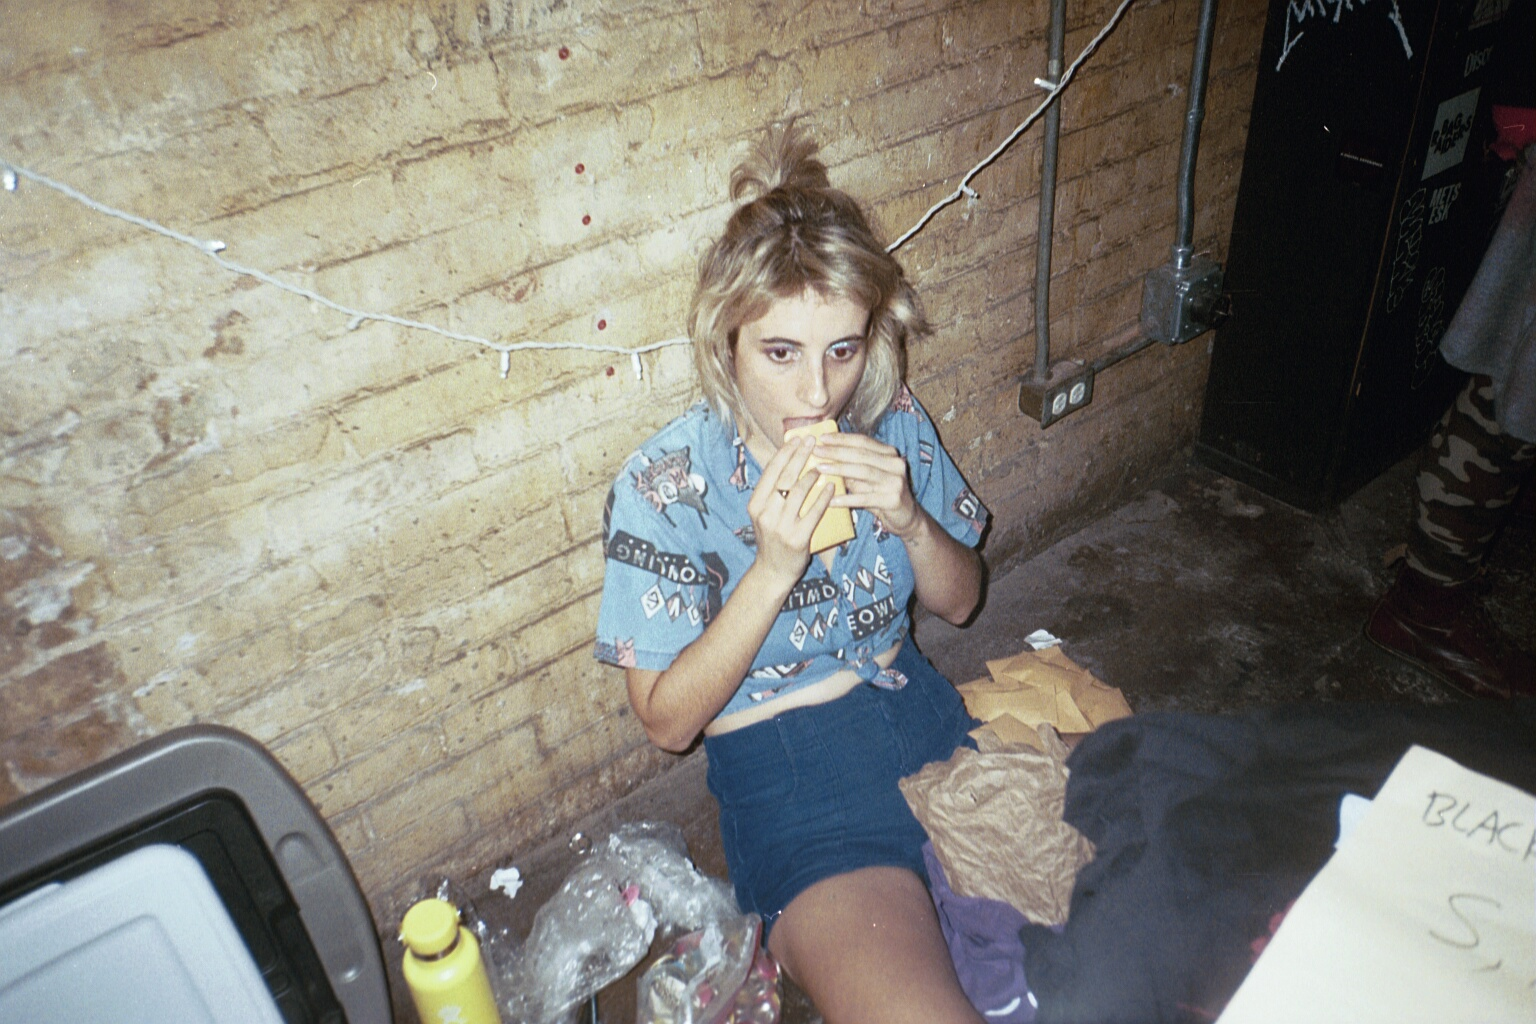 Working-merch-at-show-the-paranoyds